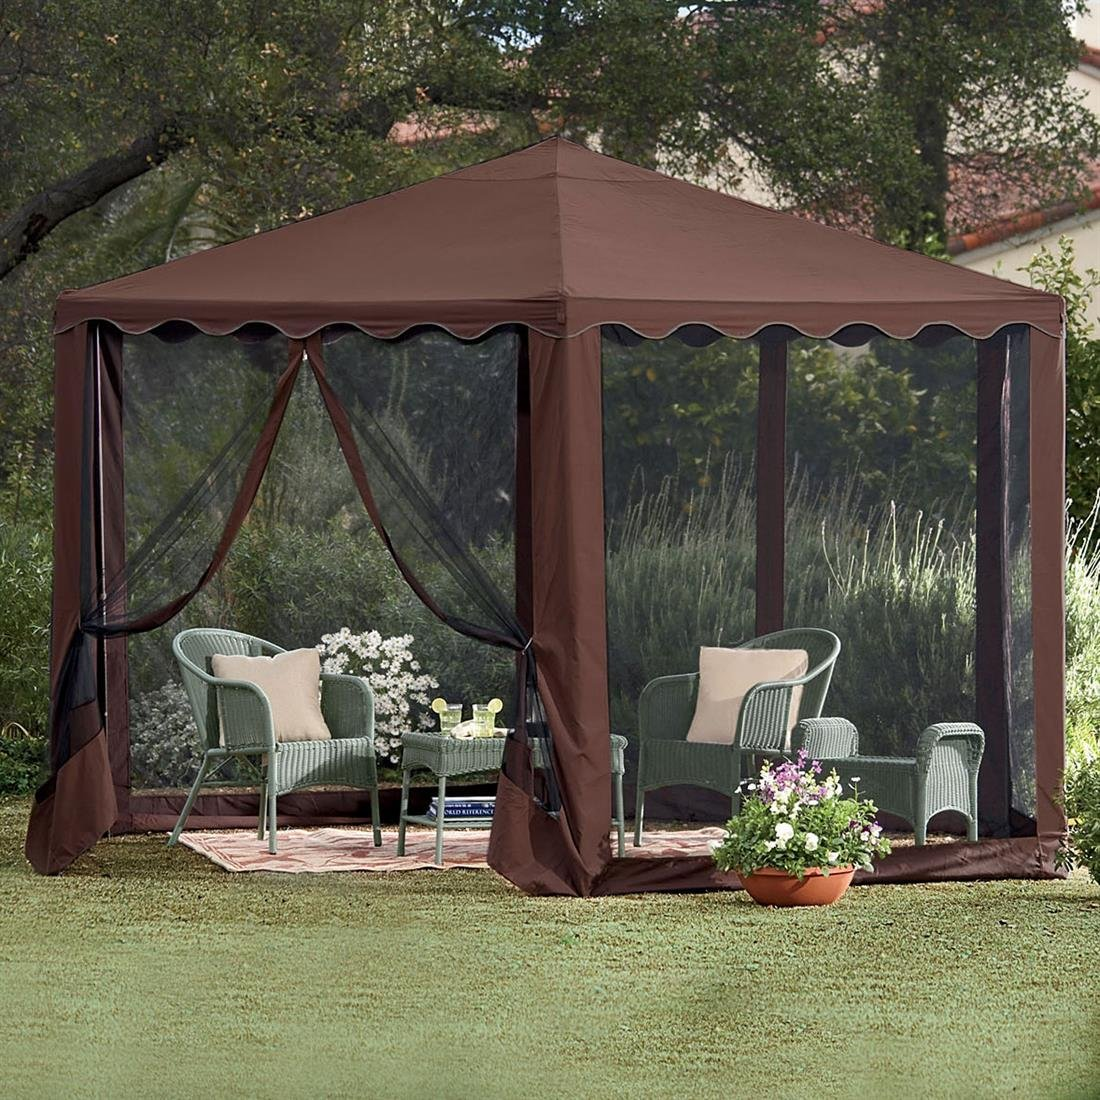 Outdoor Chair With Canopy Gazebo Canopy Patio Tent Outdoor Furniture Deck Frame